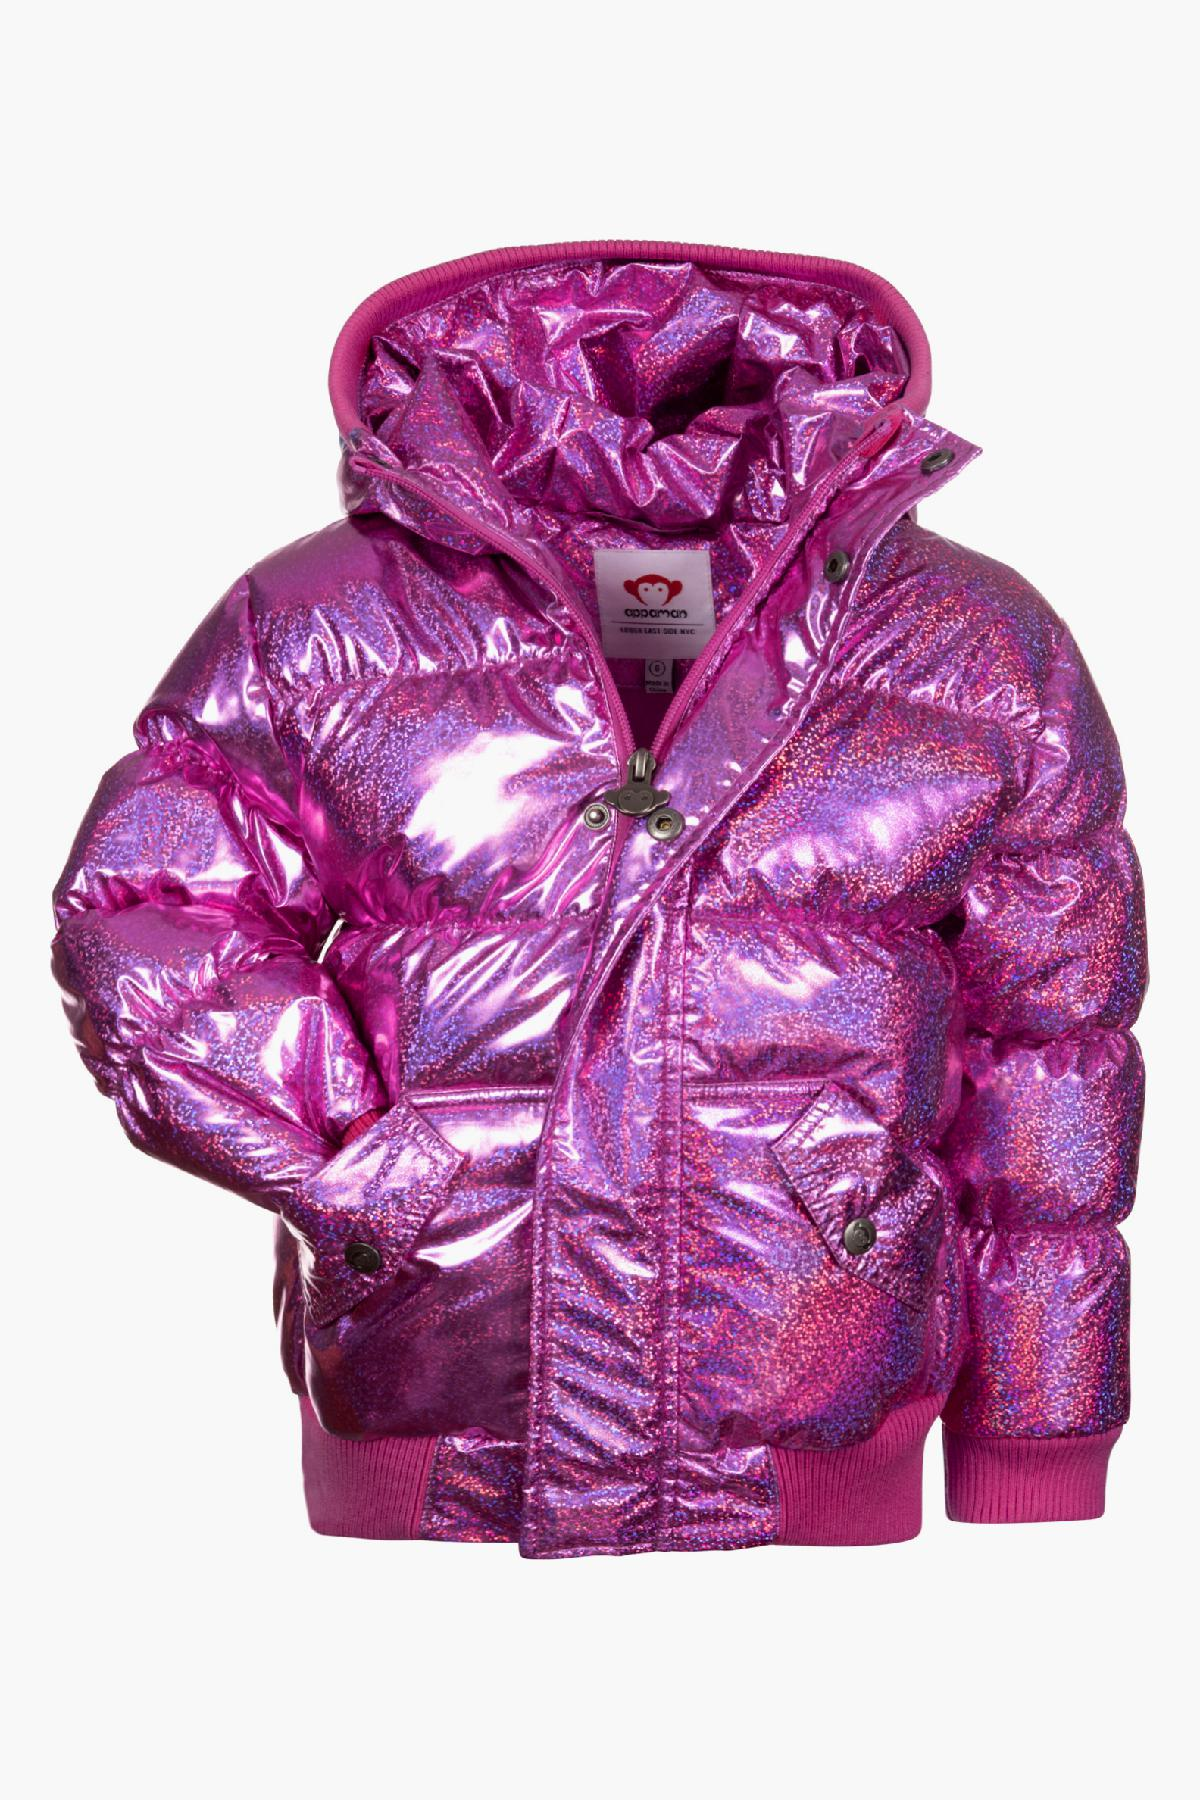 Appaman Sparkle Pink Puffy Girls Coat